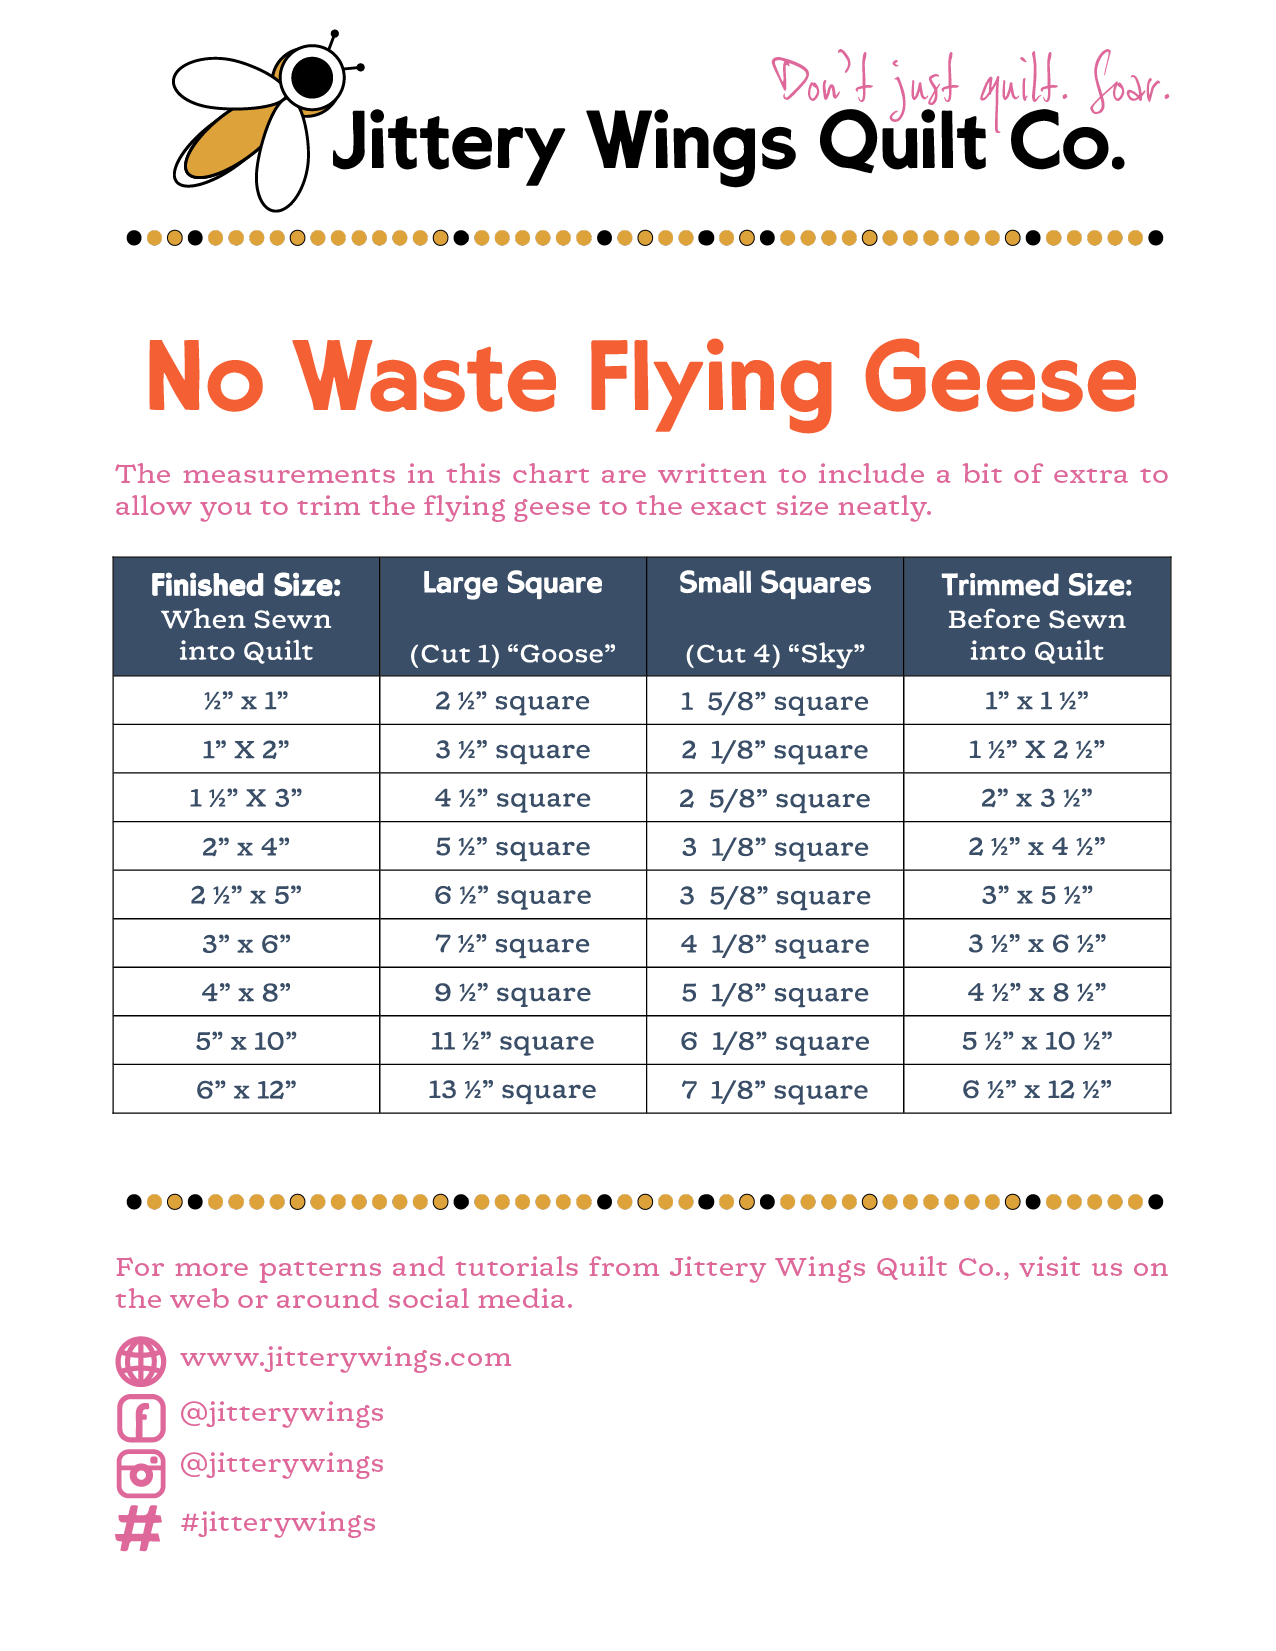 No Waste Flying Geese Size Chart from Jittery Wings